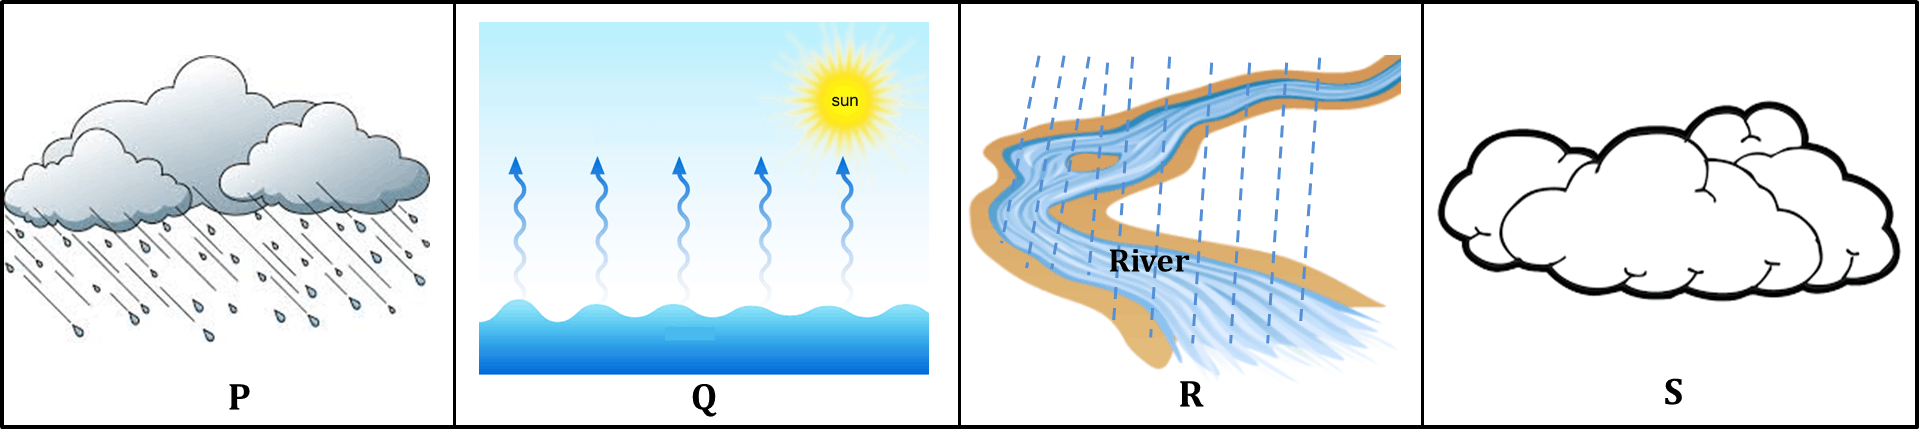 Diagram shows steps of the water cycle